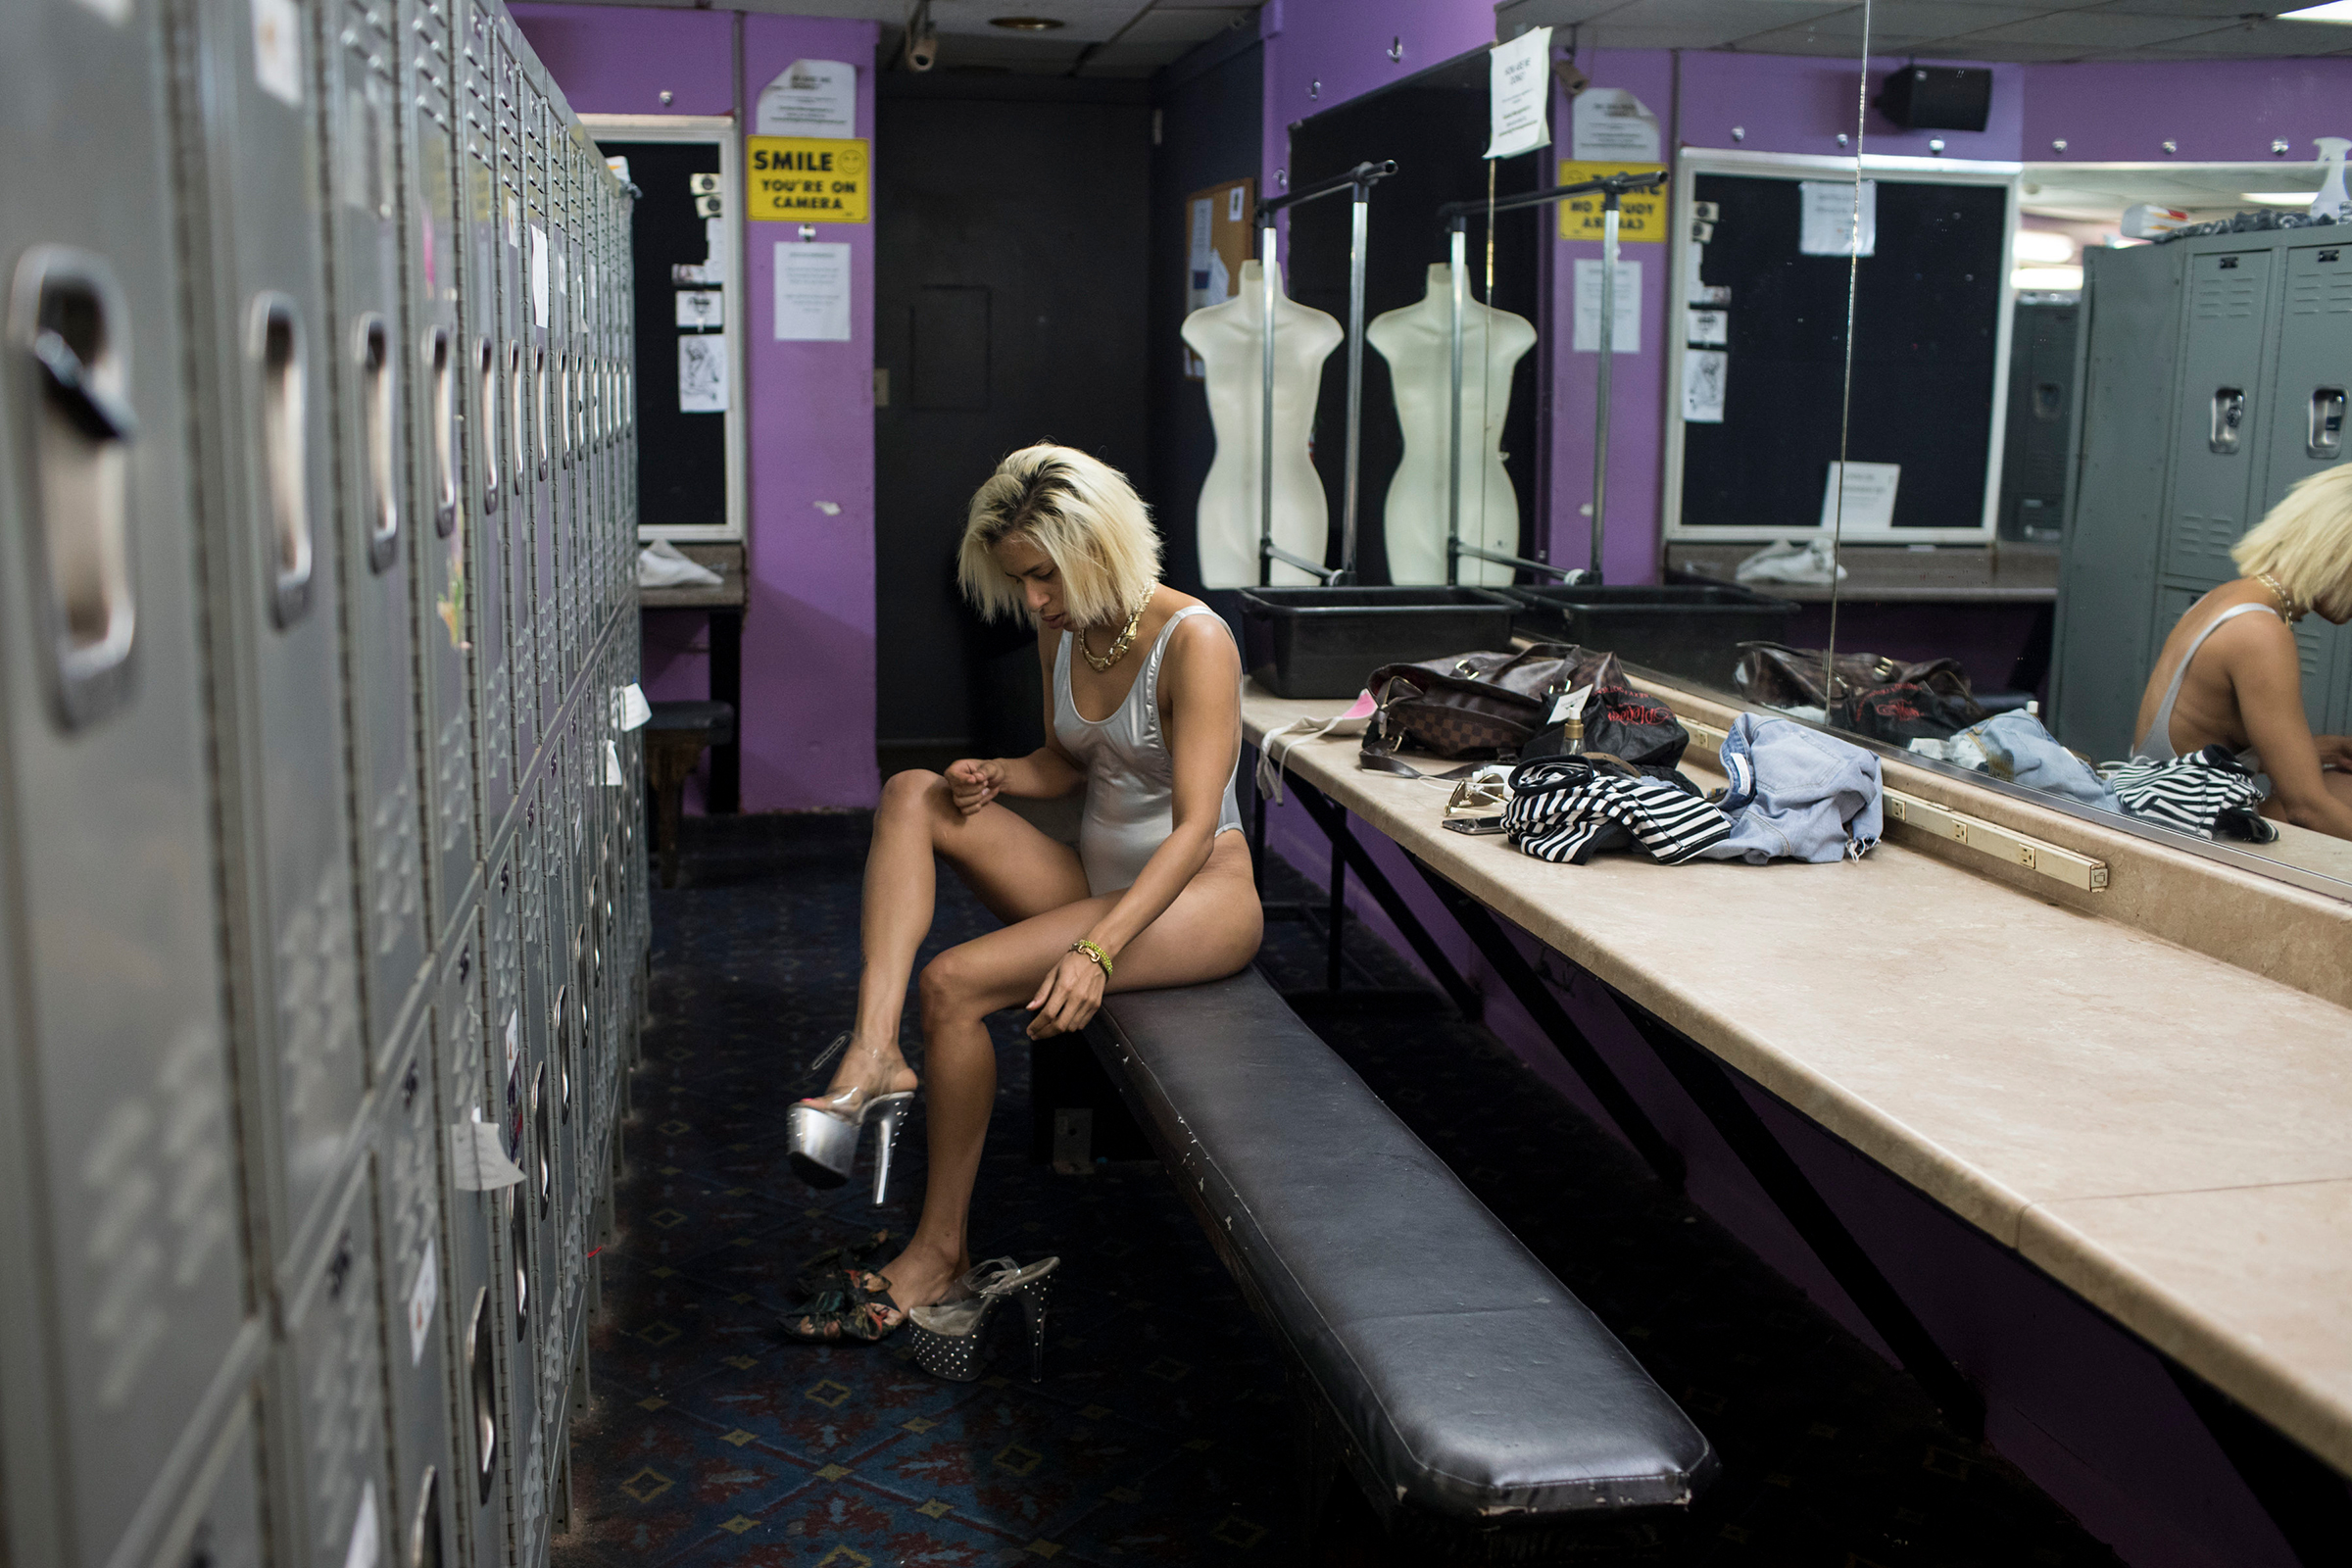 Liset prepares for work as a stripper in Austin. She works the day shift, texting her regular clients to come see her when she's working. She says they enjoy her company and she knows how to make them feel special.